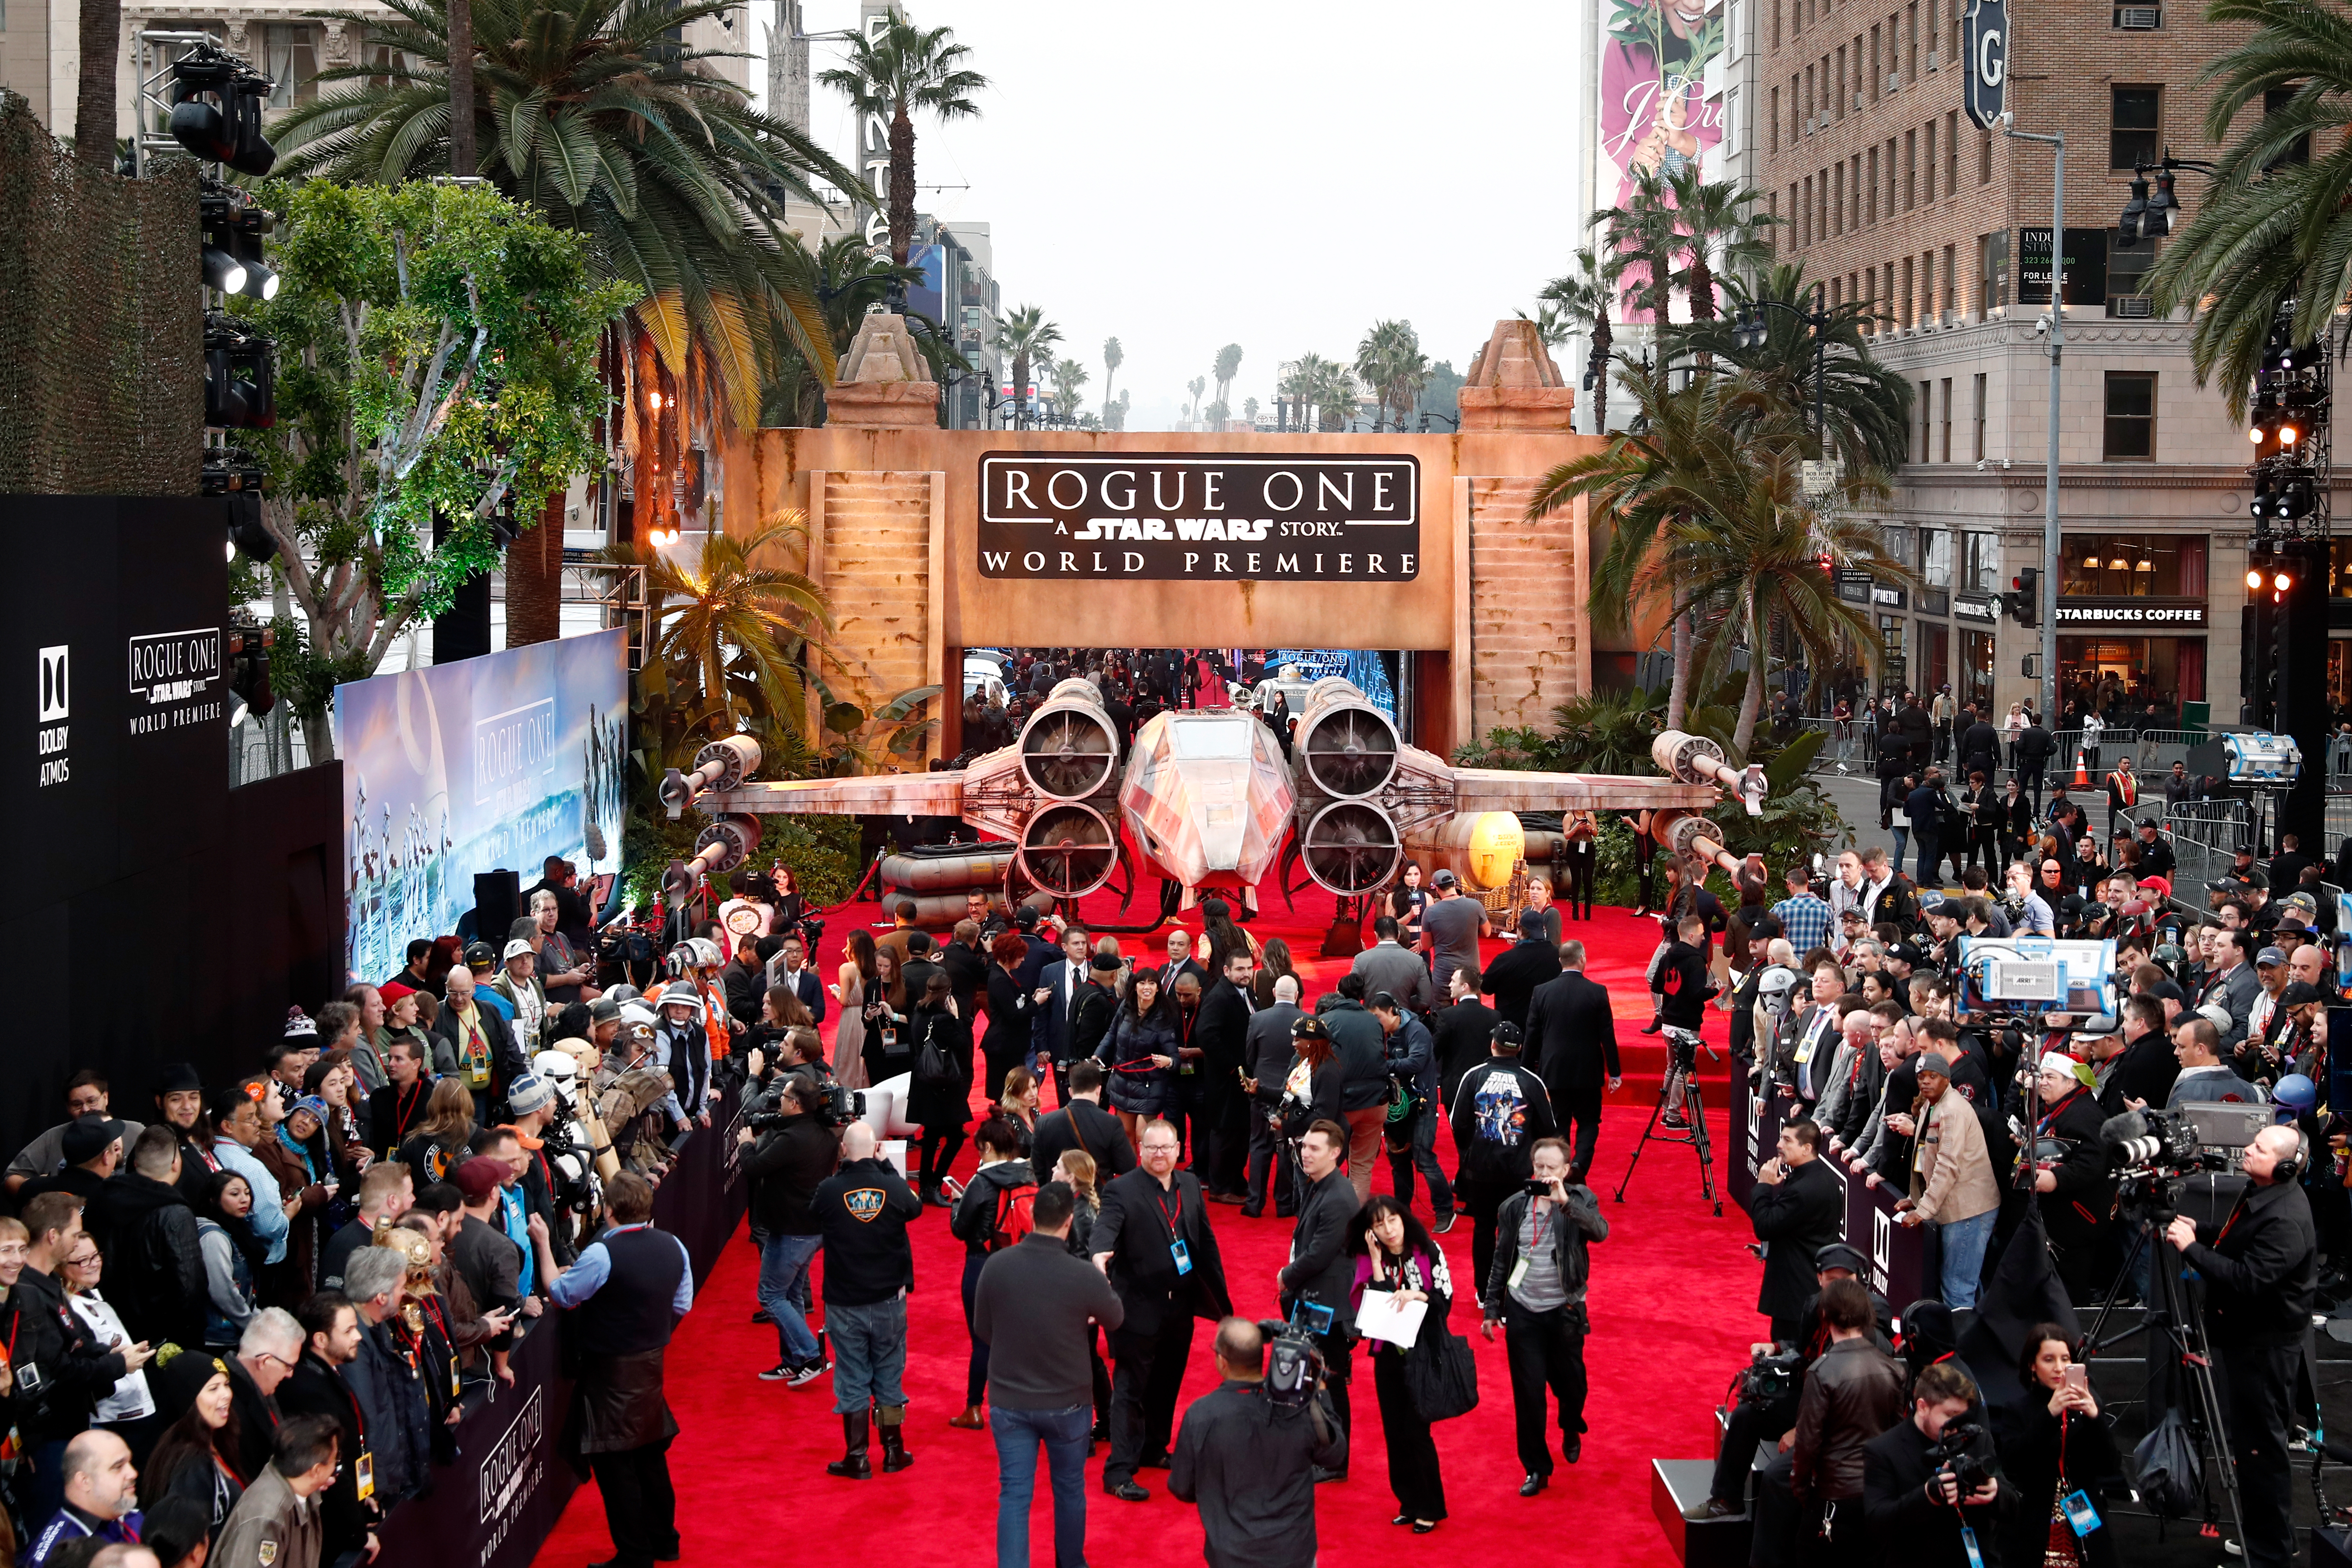 rogue one premiere photos star wars arrives in hollywood rogue one the first of three standalone star wars movies planned arrives in theaters this friday 16